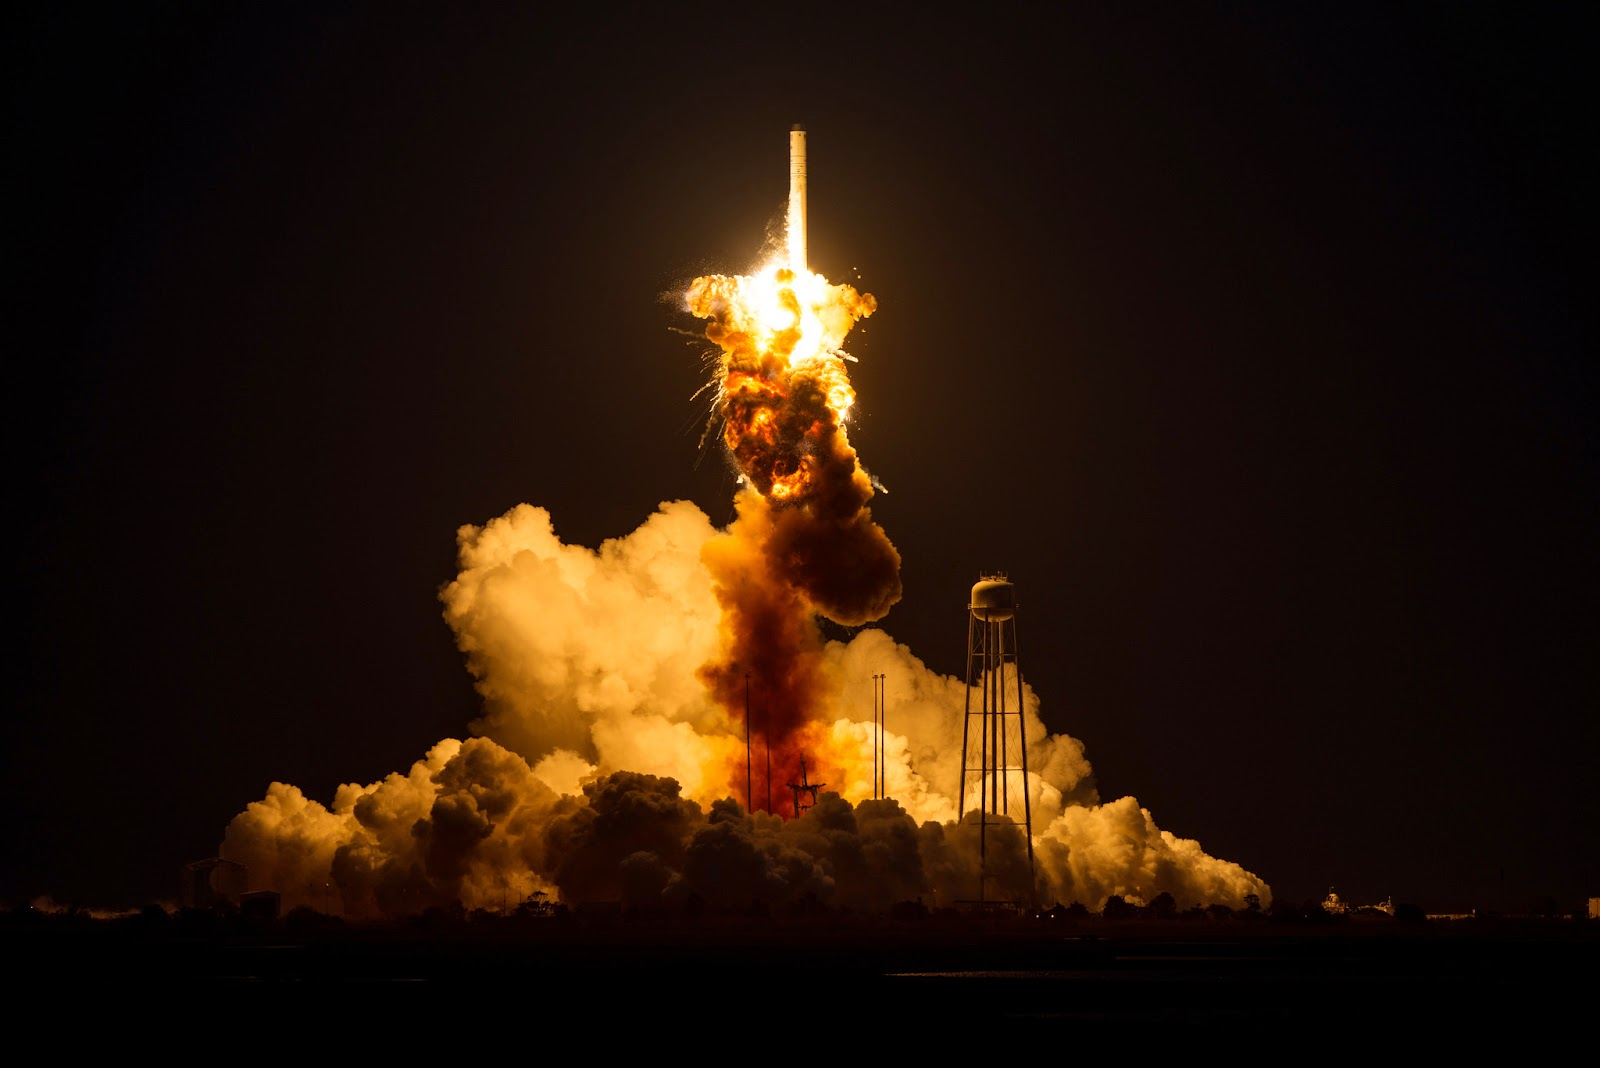 The Orbital Sciences Corporation Antares rocket, with the Cygnus spacecraft onboard suffers a catastrophic anomaly moments after launch from the Mid-Atlantic Regional Spaceport Pad 0A, Tuesday, Oct. 28, 2014, at NASA's Wallops Flight Facility in Virginia. The Cygnus spacecraft was filled with about 5,000 pounds of supplies slated for the International Space Station, including science experiments, experiment hardware, spare parts, and crew provisions. Credit: NASA/Joel Kowsky